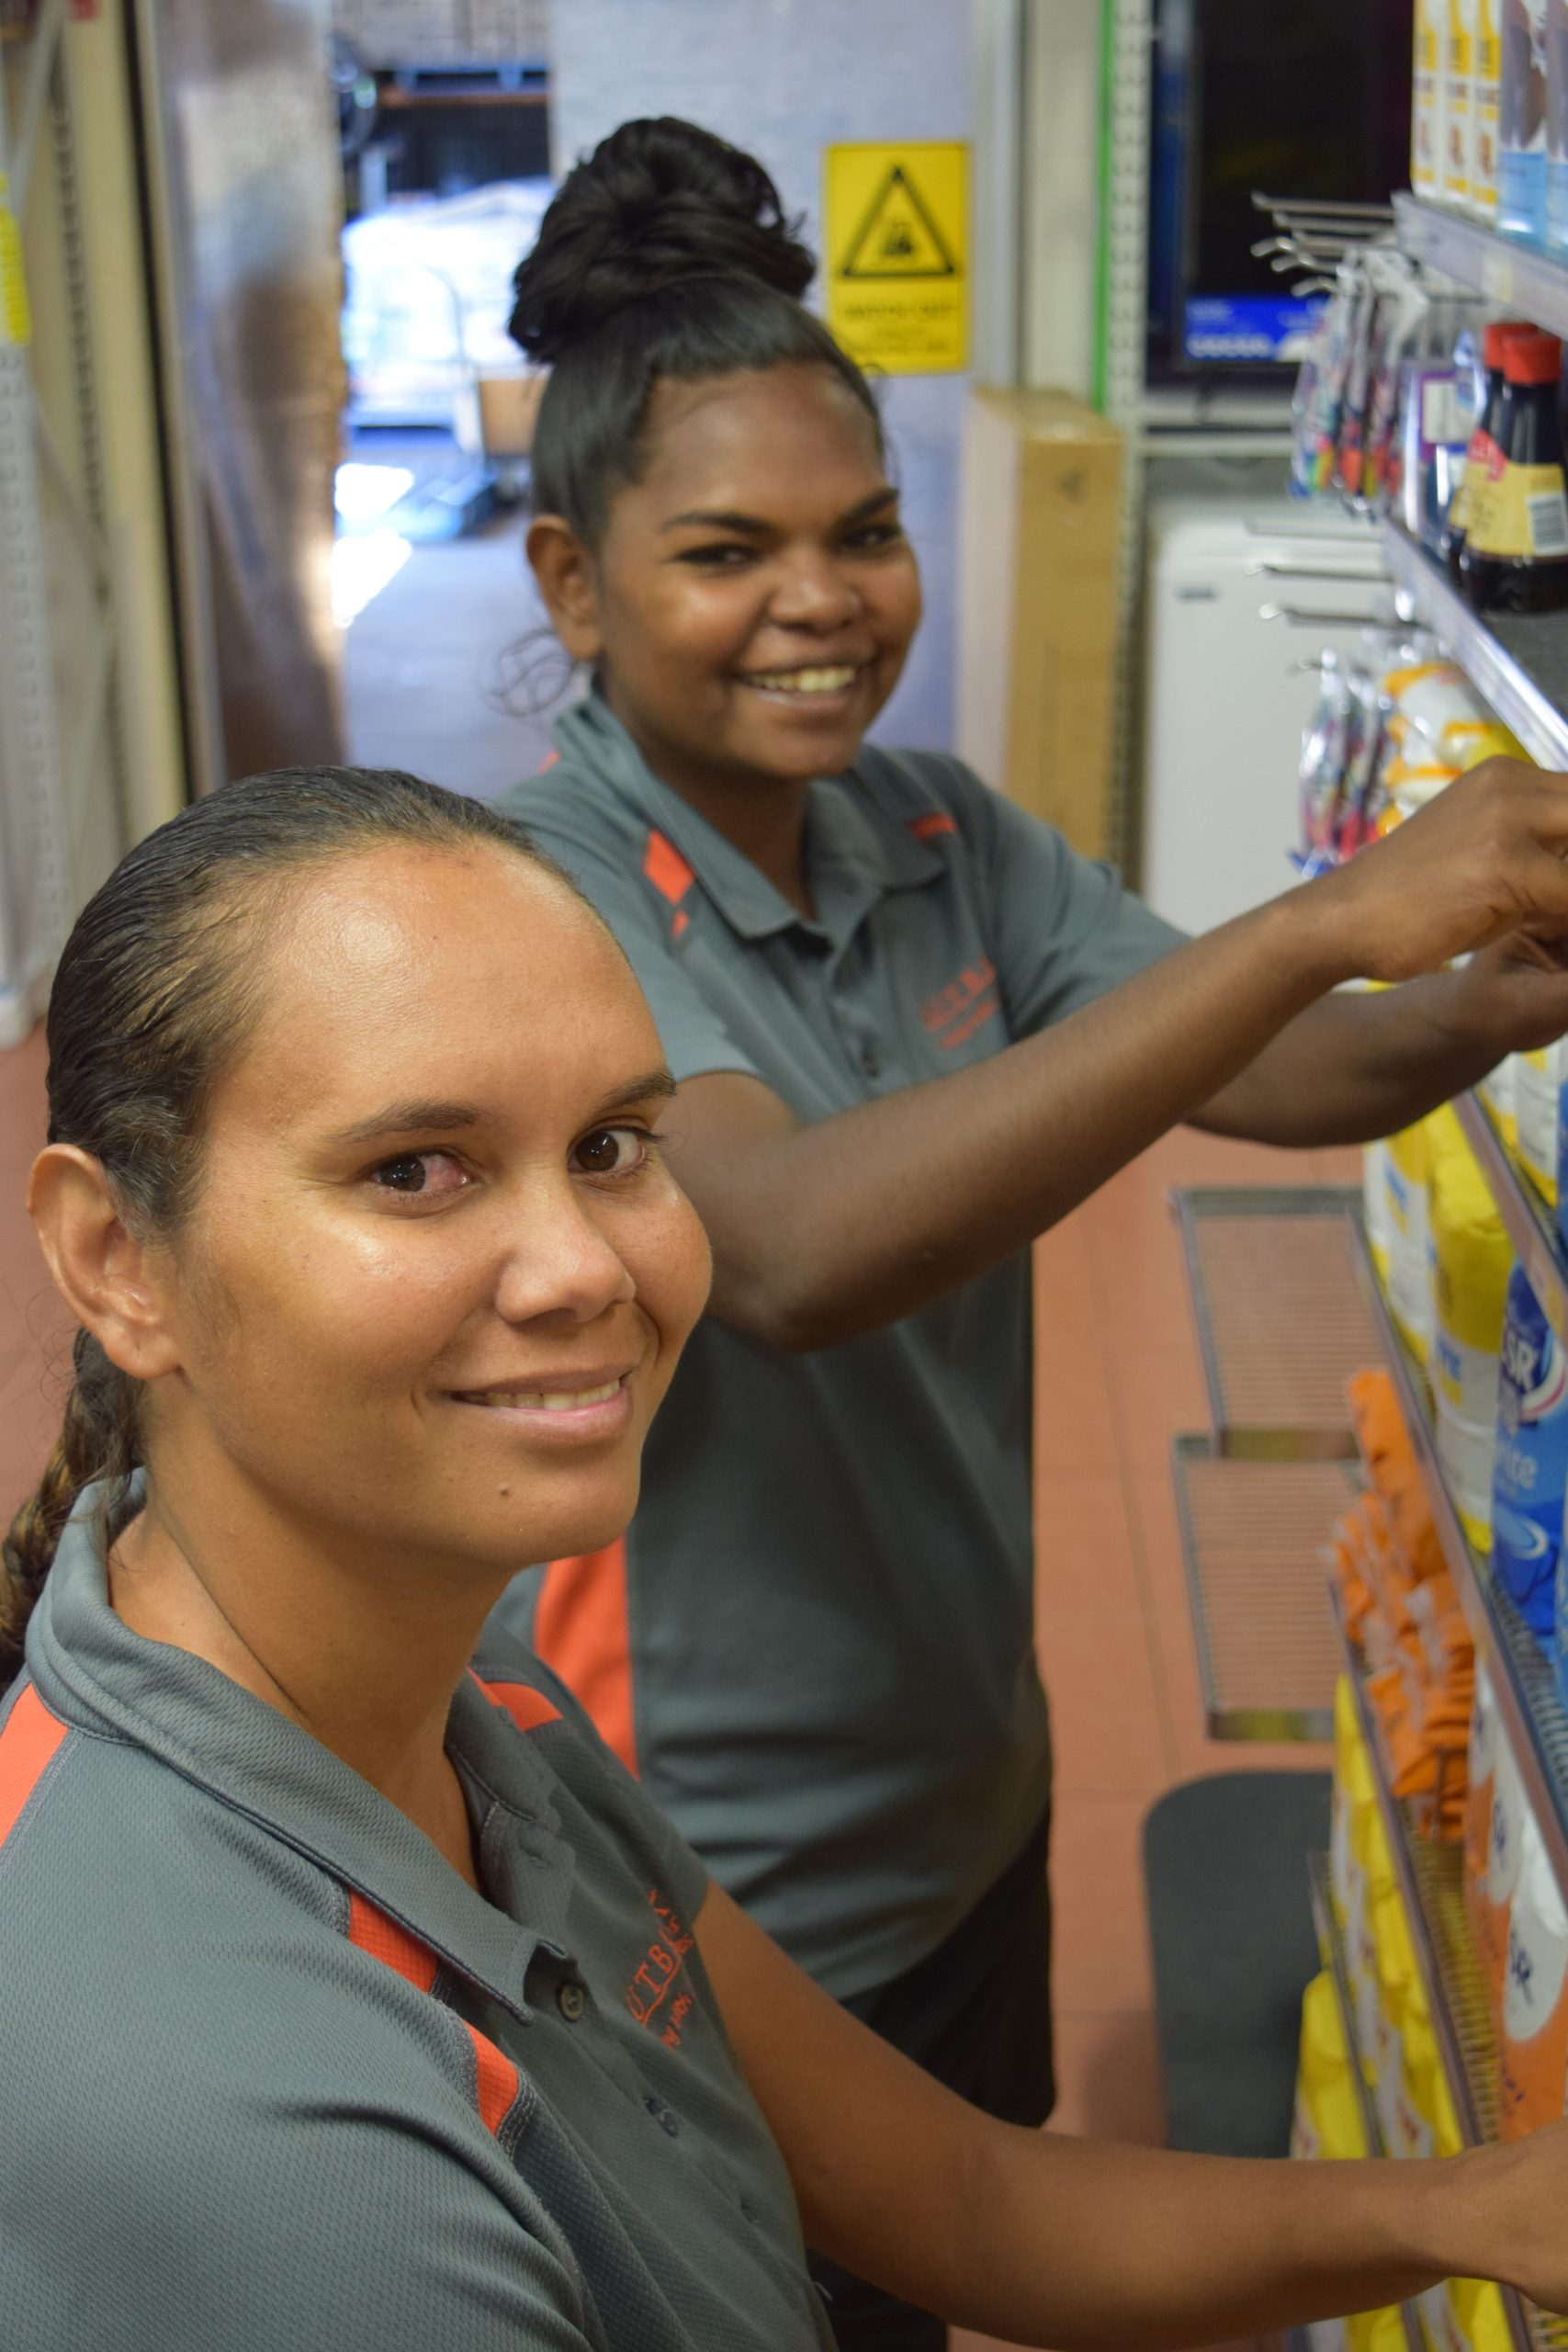 Indigenous Trainer a first for Outback Stores